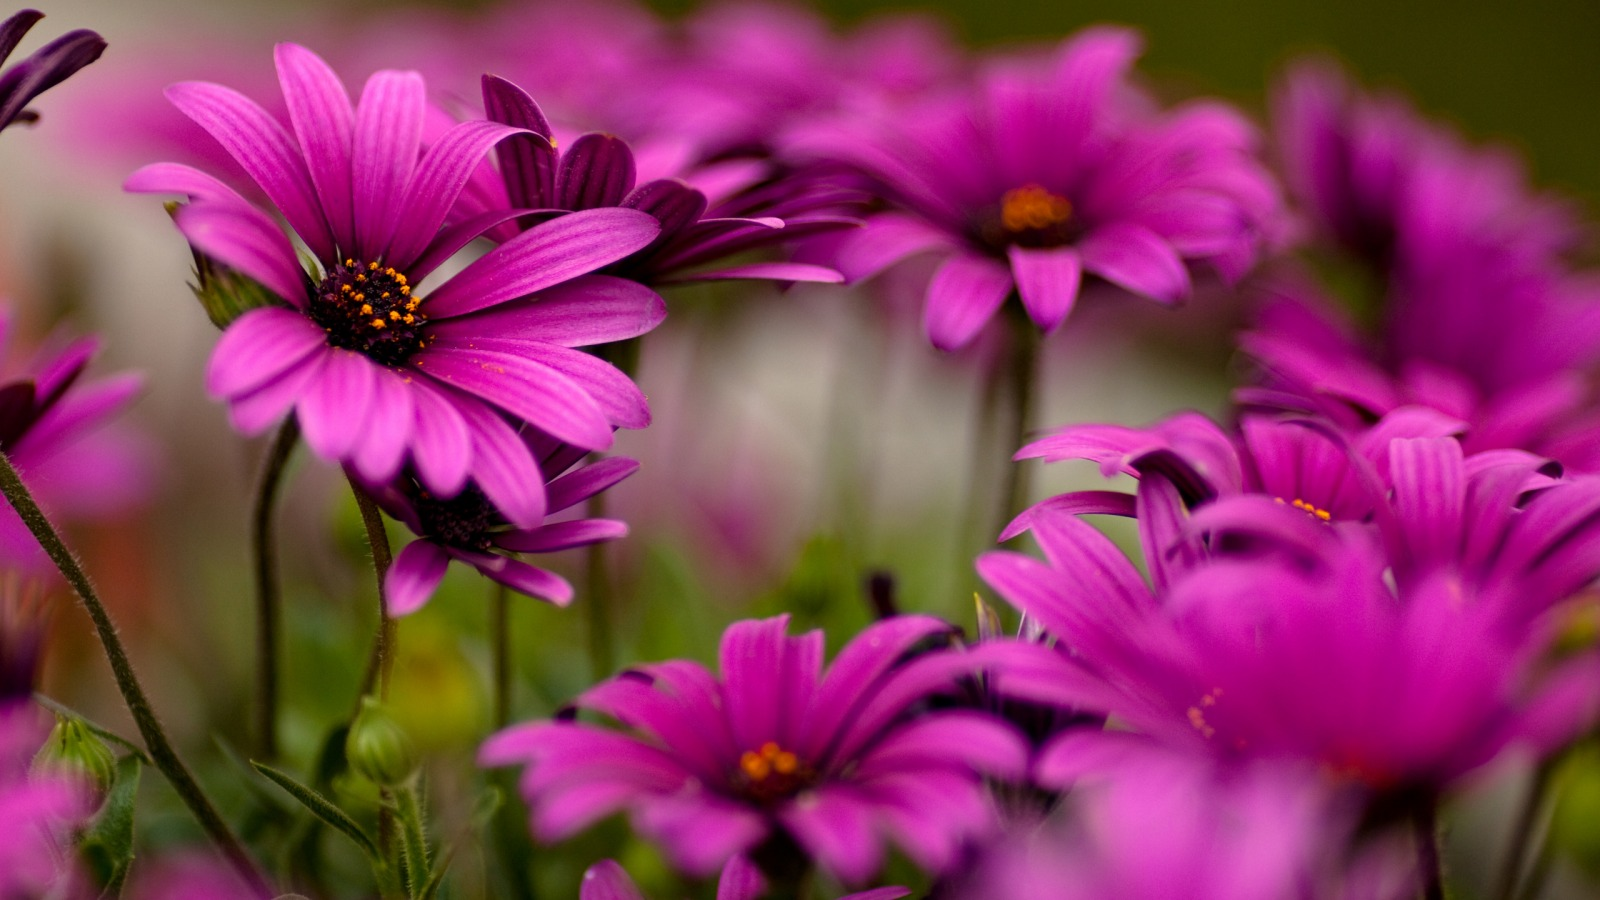 Flower Wallpaper For PC